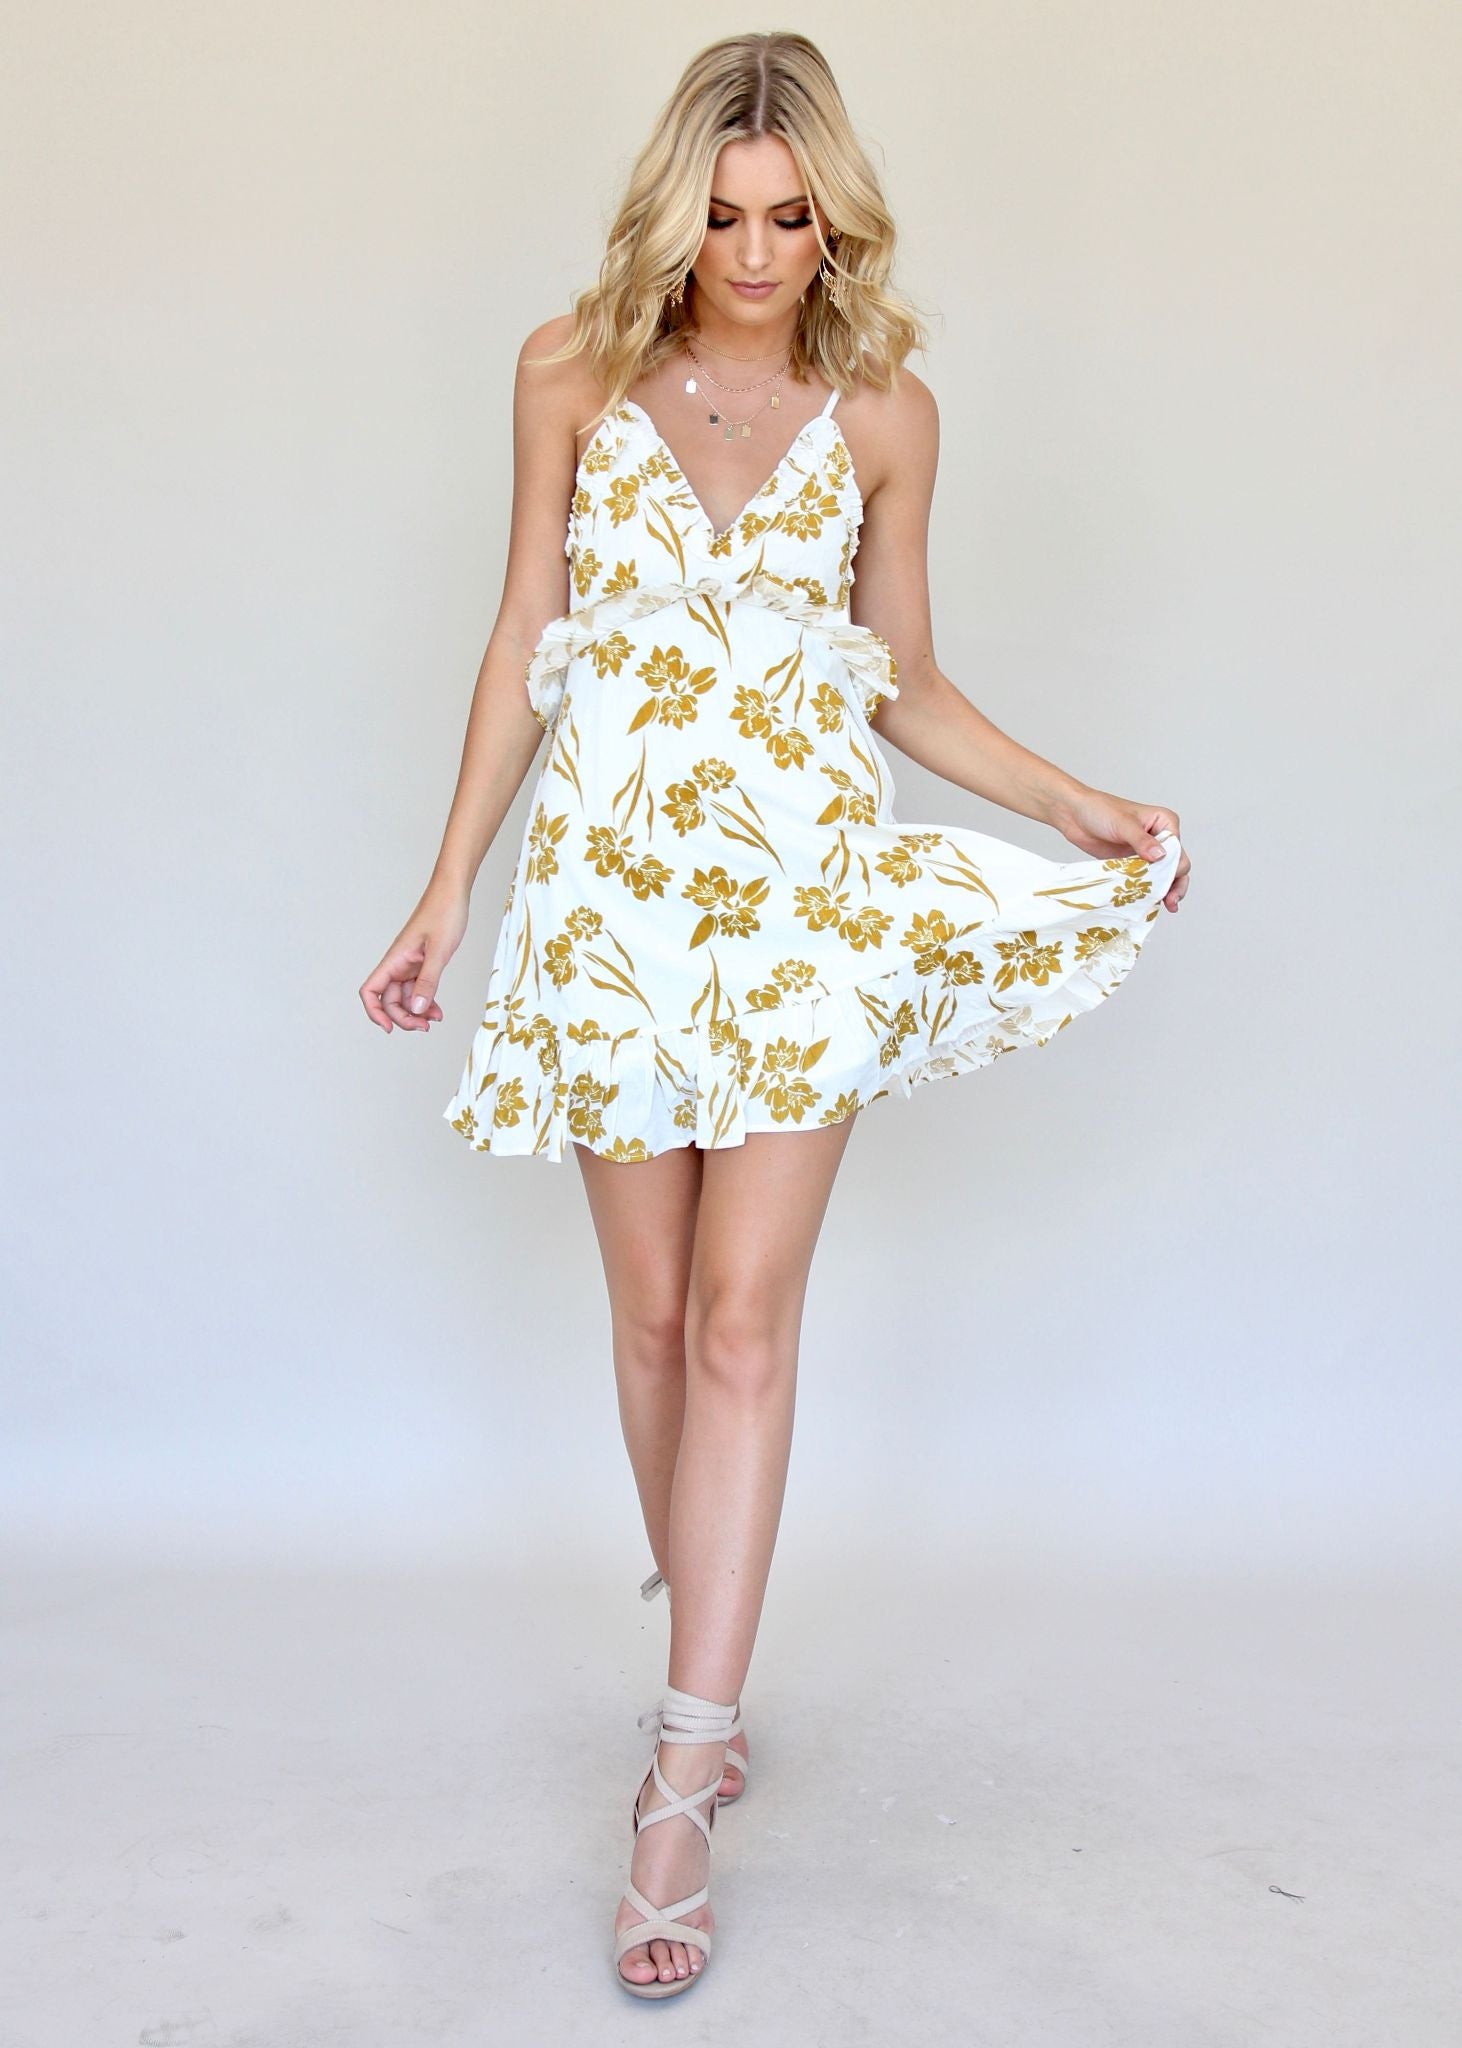 Never Too Late Dress - Mustard/White